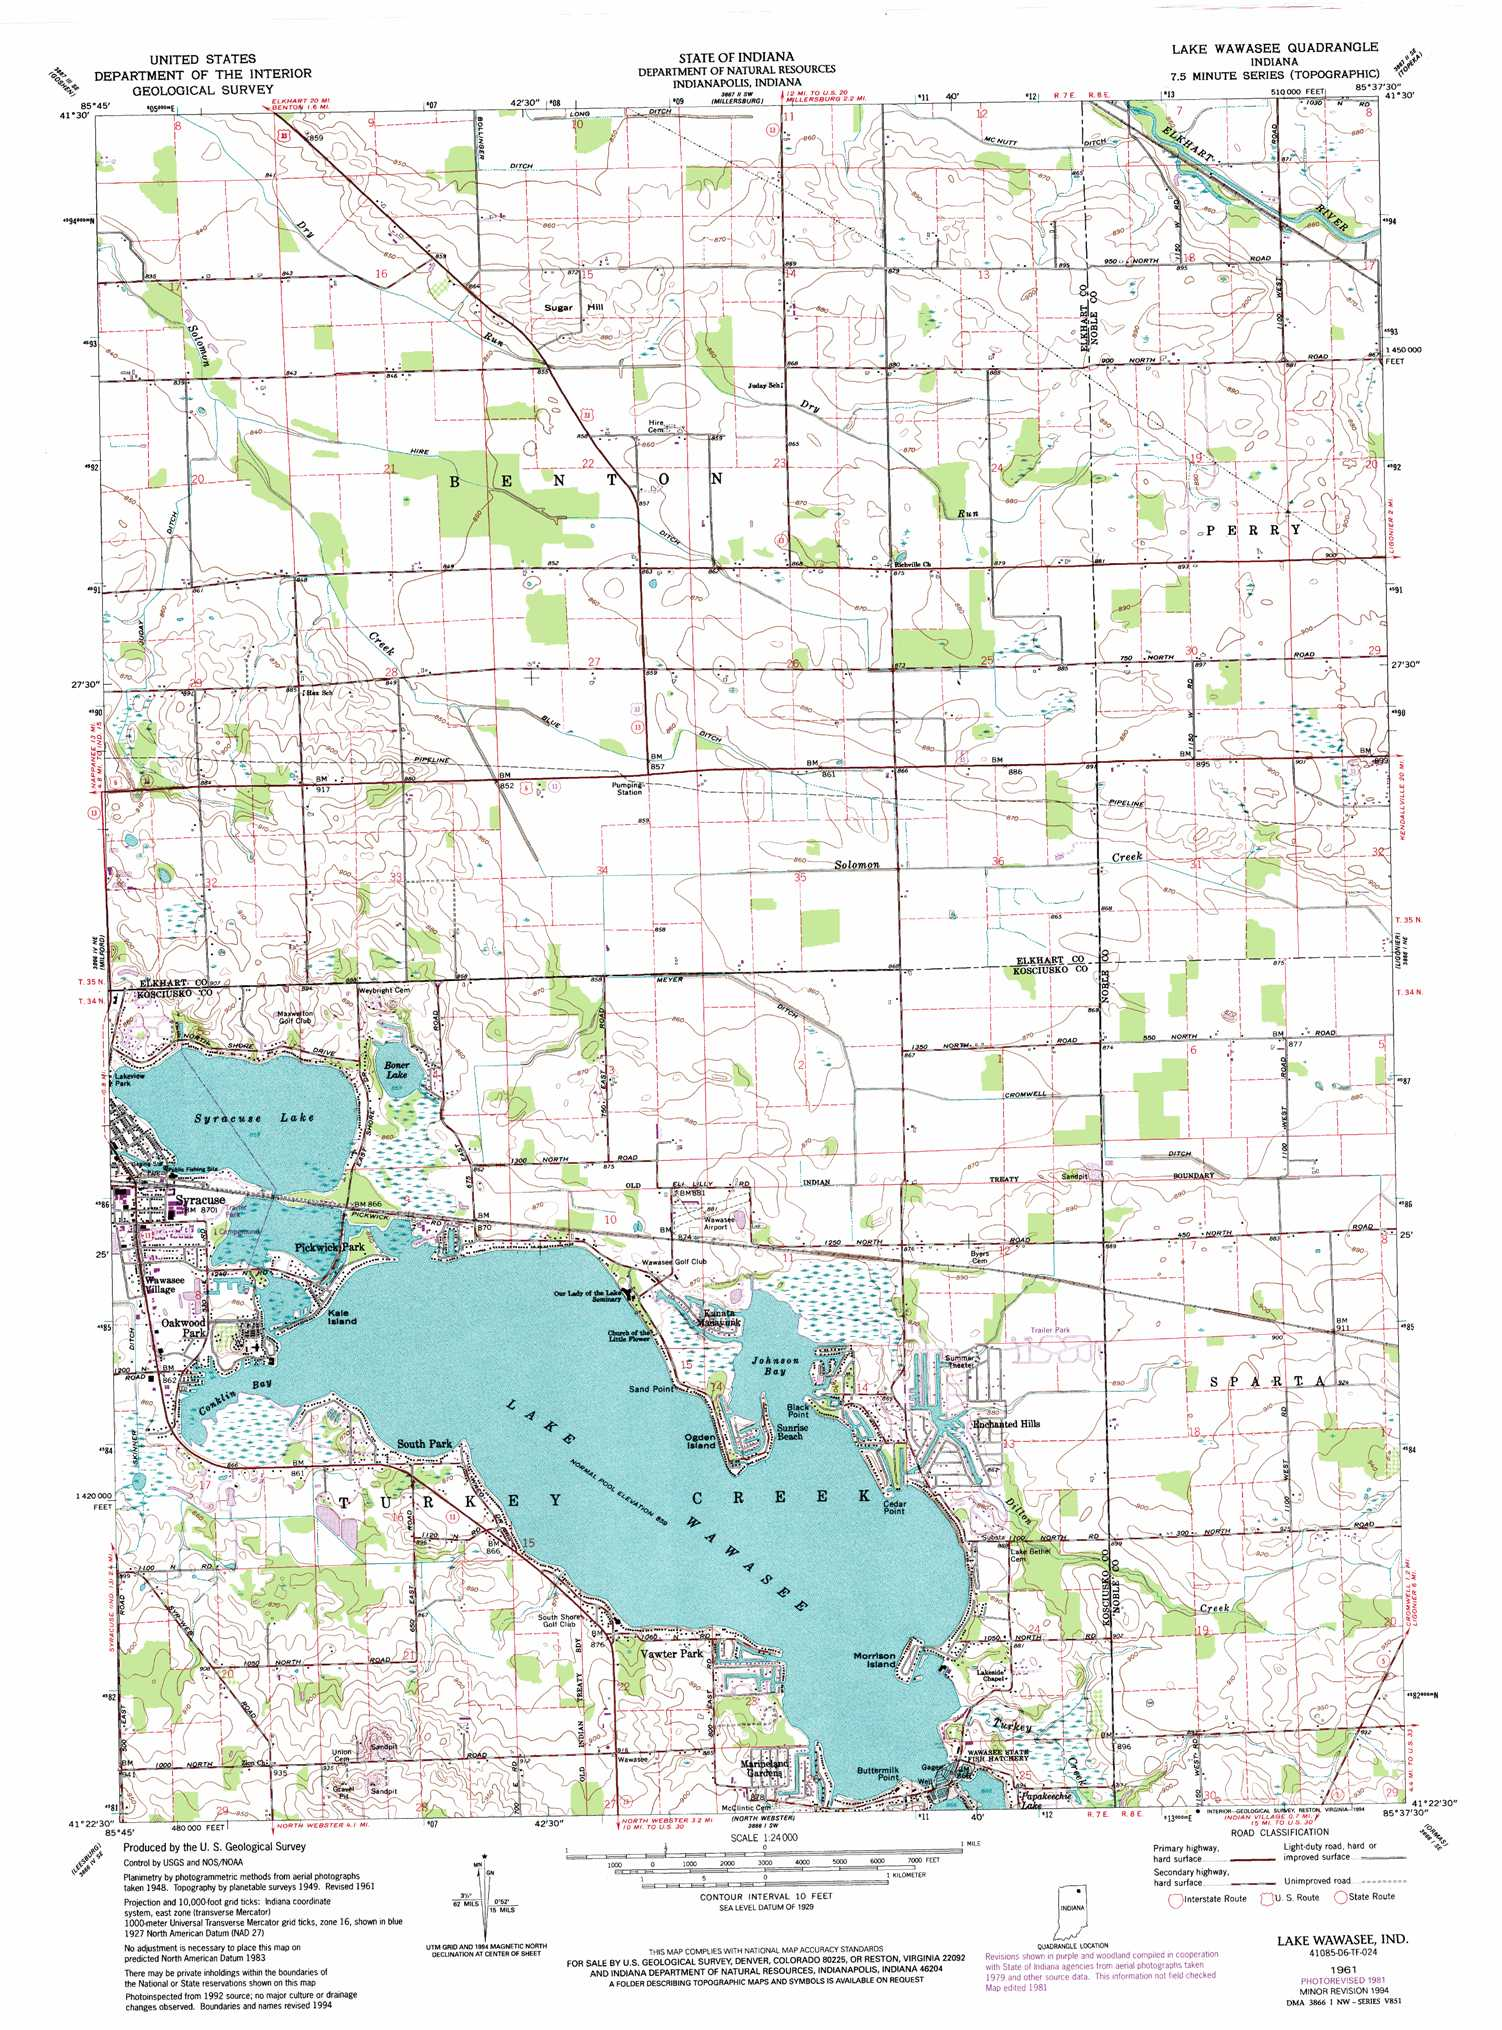 78b096d3d0ed Lake Wawasee topographic map, IN - USGS Topo Quad 41085d6